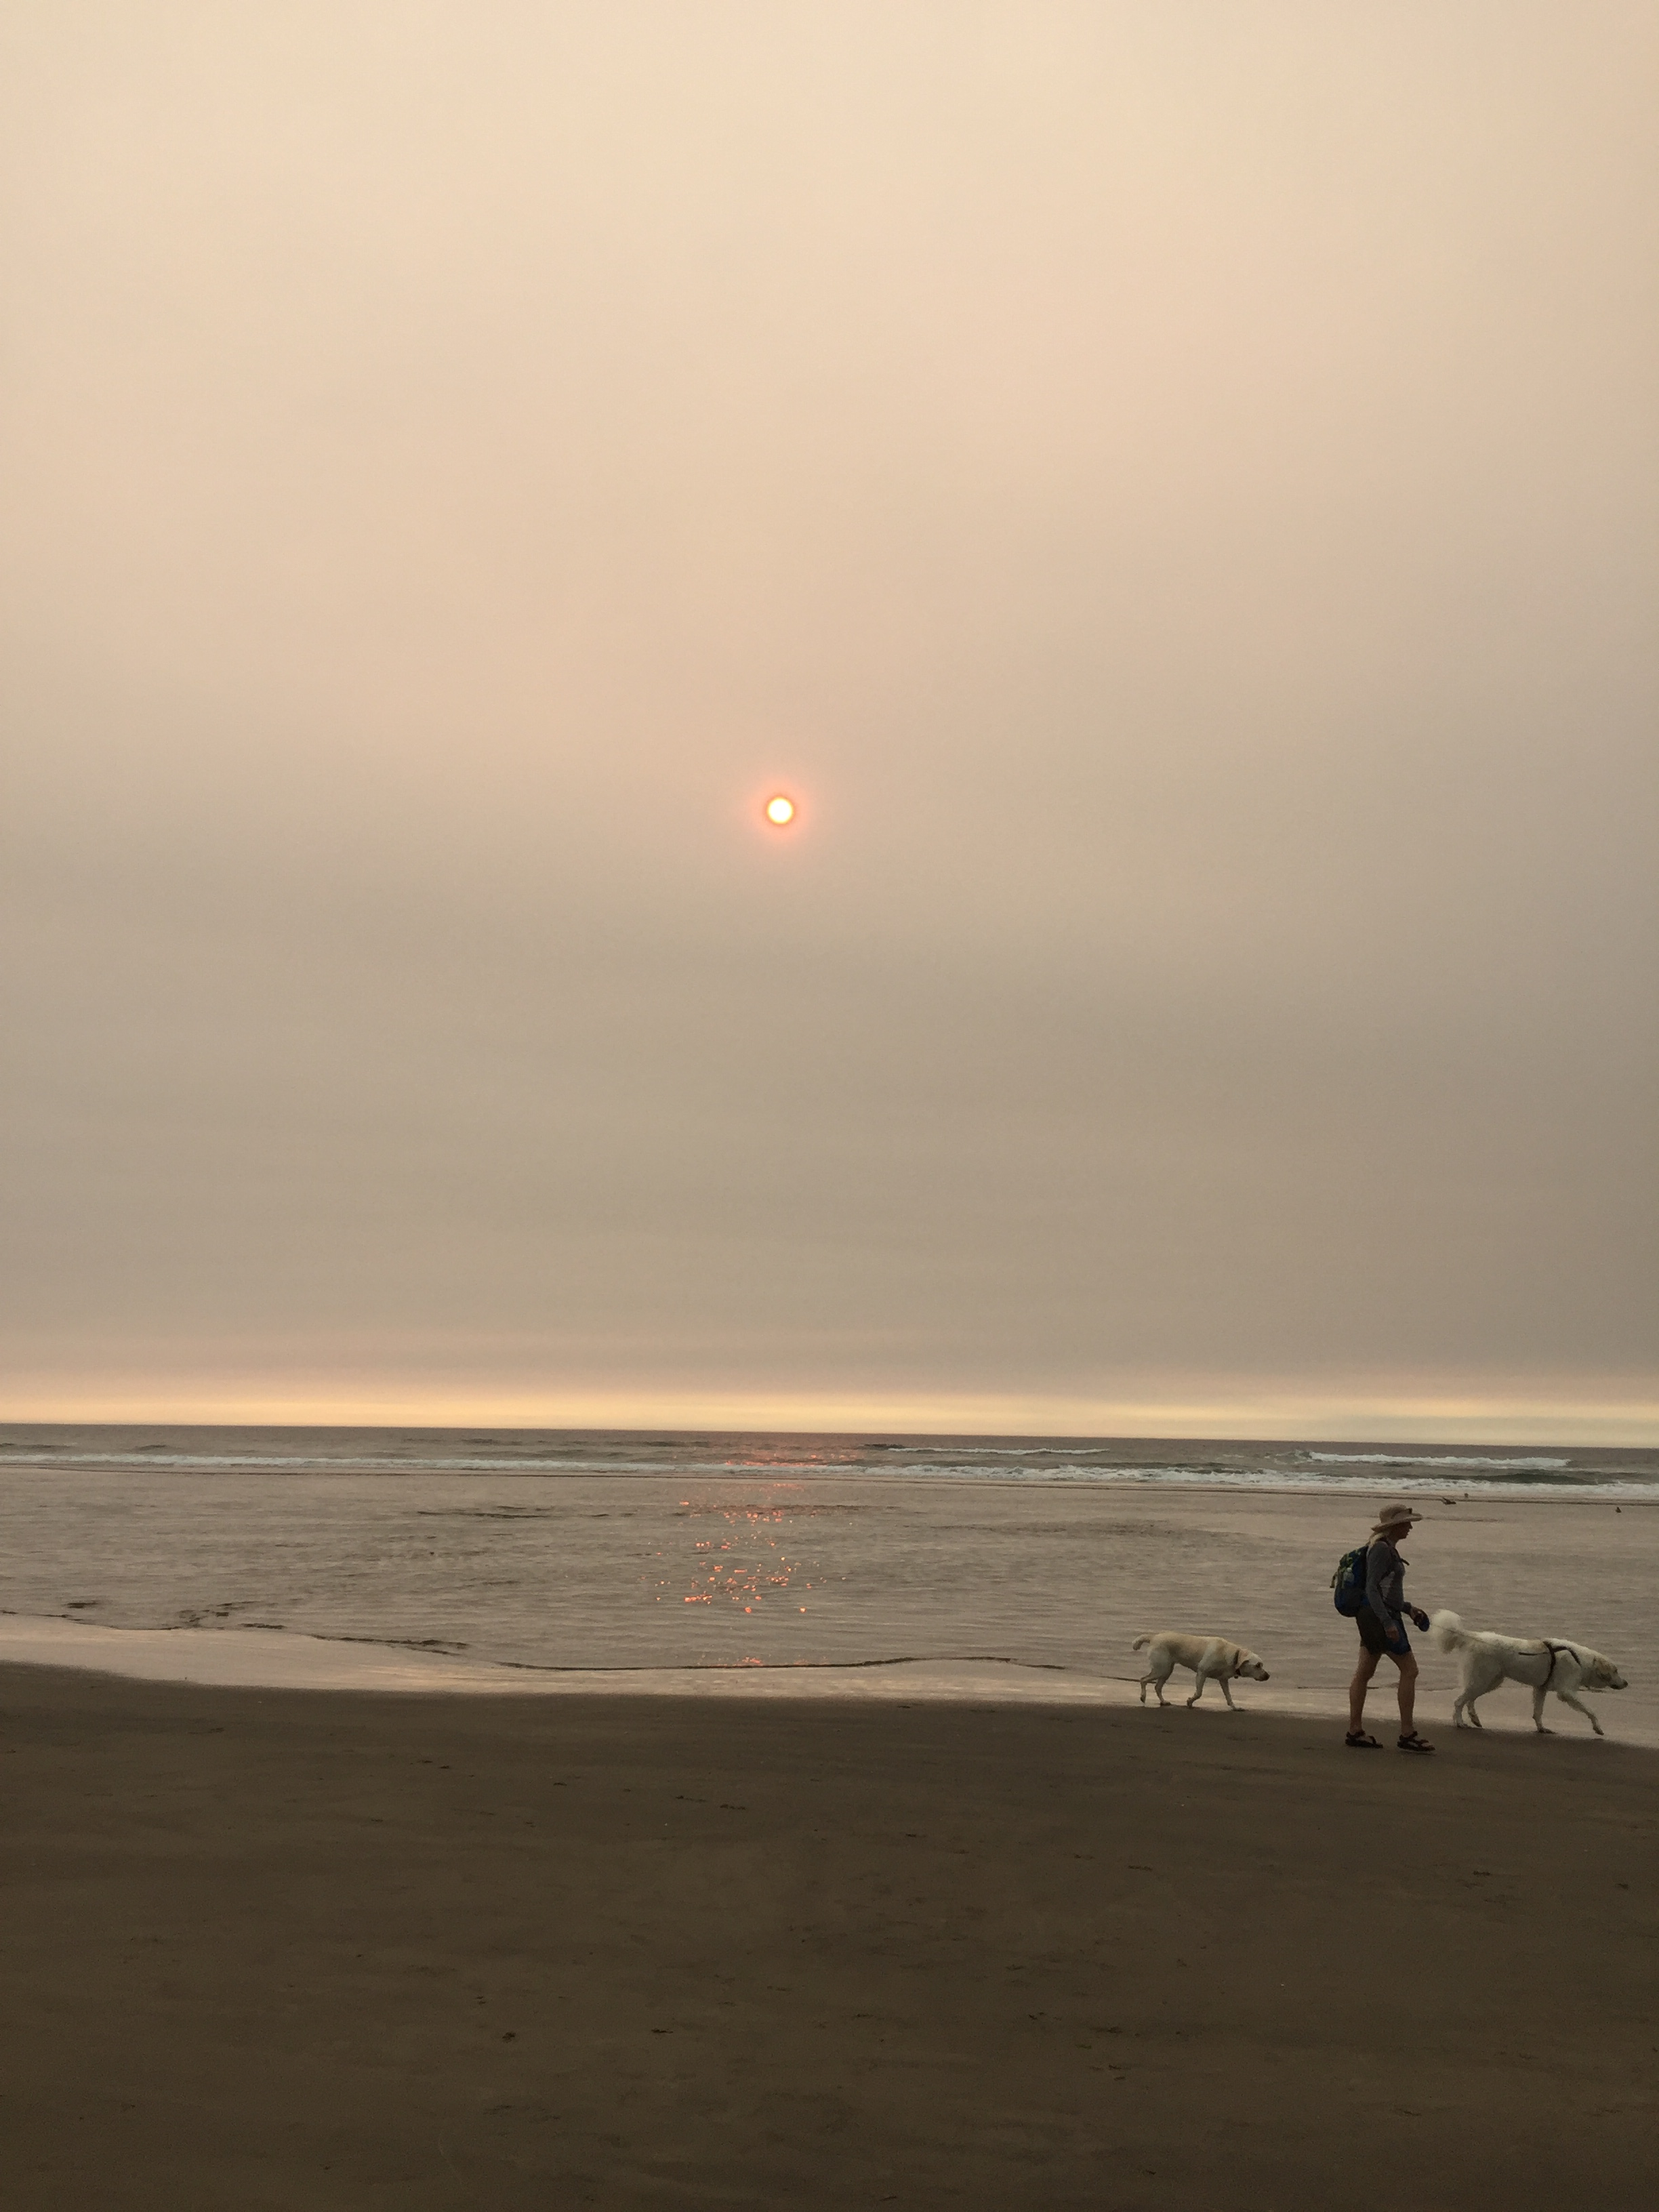 Oregon beach, hazy sun, person walking two dogs.